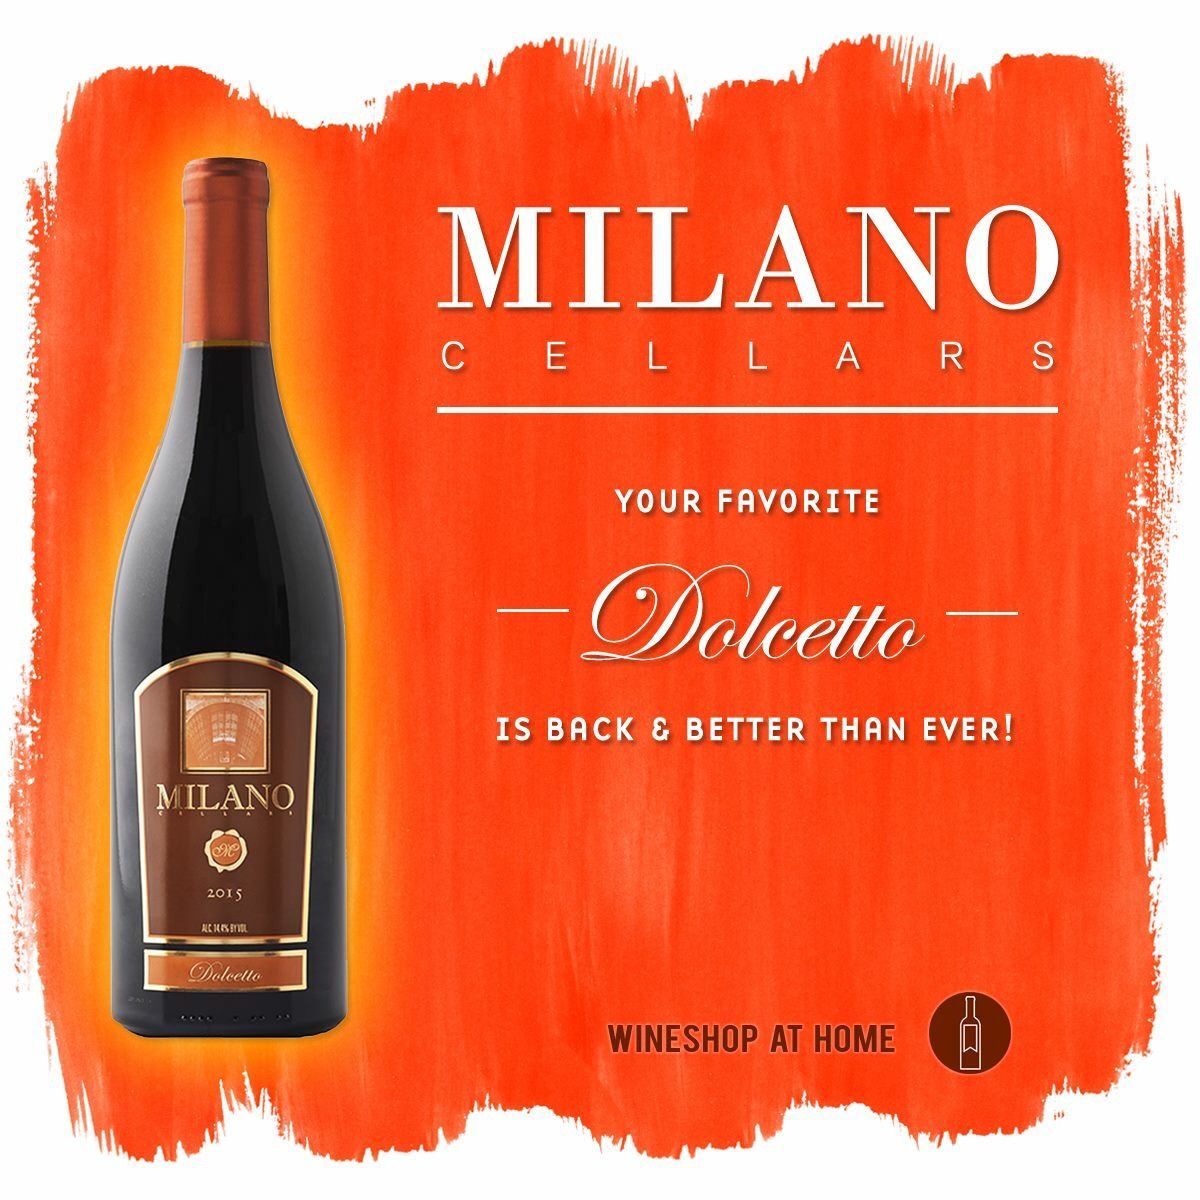 It S Here Our Most Popular Wine The Milano Cellars Dolcetto Is Back And Better Than Ever Ask Me About It Today Wine Drinks Wine Shop At Home Sweet Wine